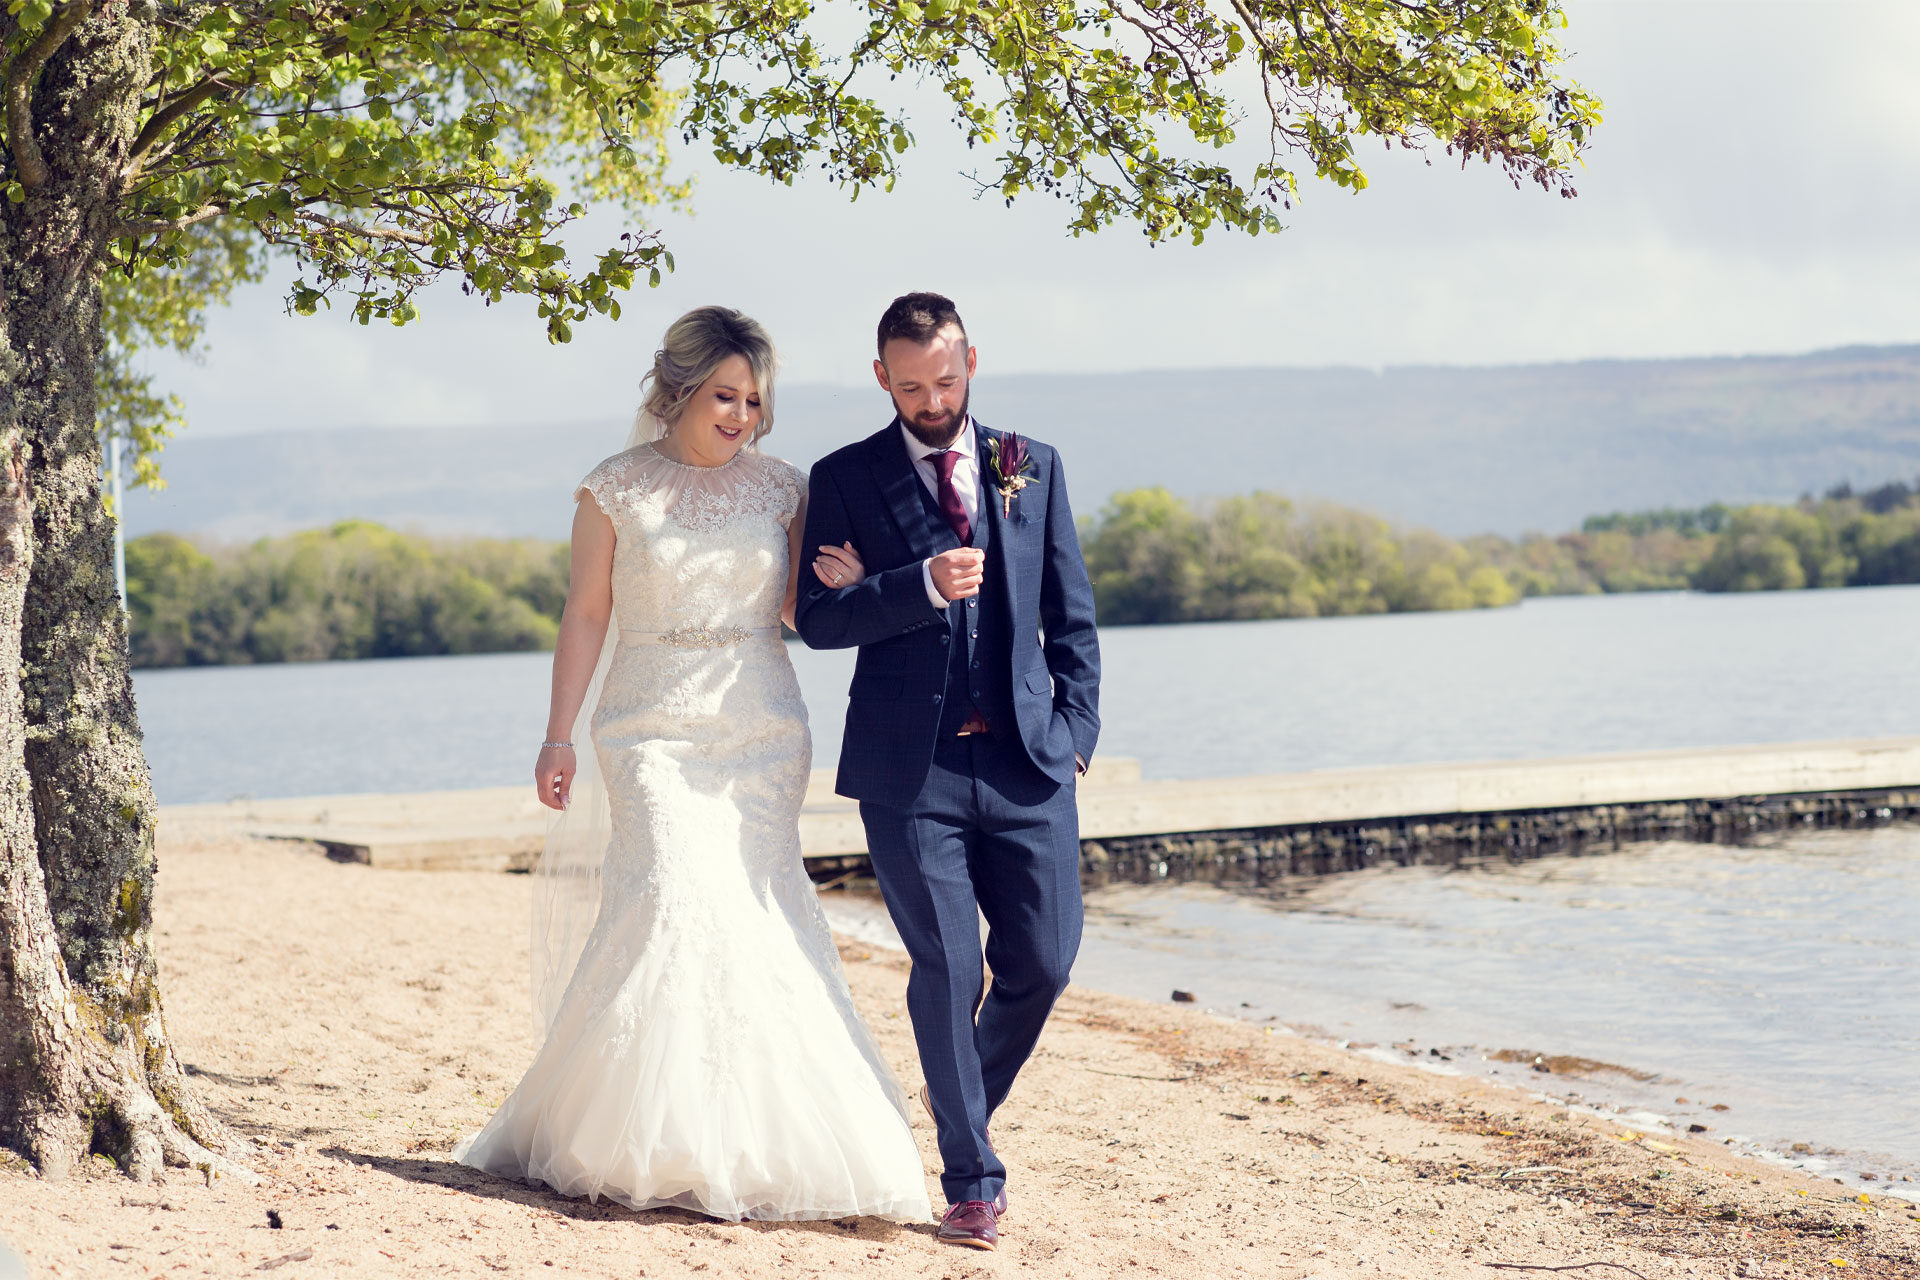 Photo of Carla and Gareth on their wedding day, captured in the beach area of Rossharbour Resort, Co. Fermanagh, Northern Ireland.